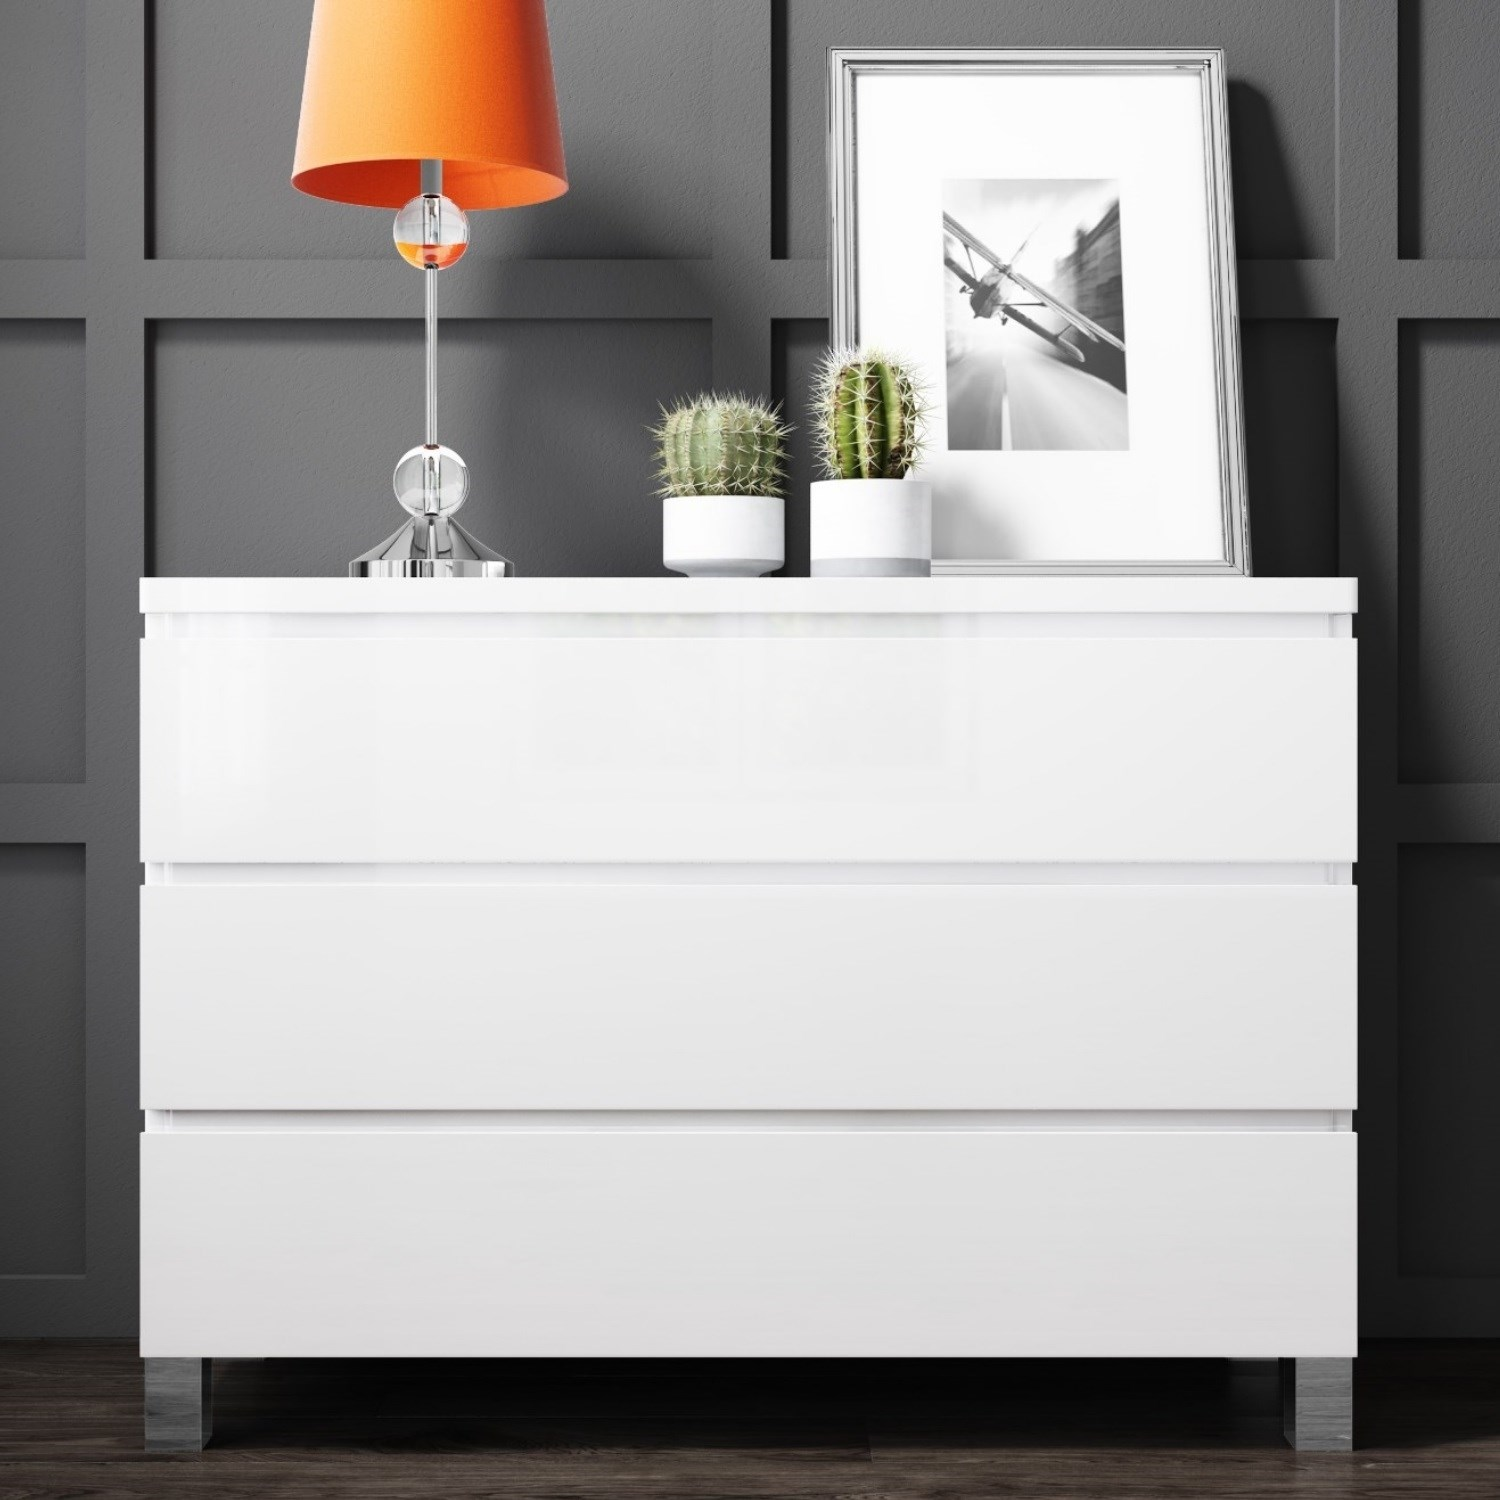 High Gloss Bedroom Cupboards Lemon Bedroom Accessories Toddler Bedroom Curtains Black And White Bedroom Cupboard Designs: High Gloss Chest Of Drawers White 3 Drawer Bedroom